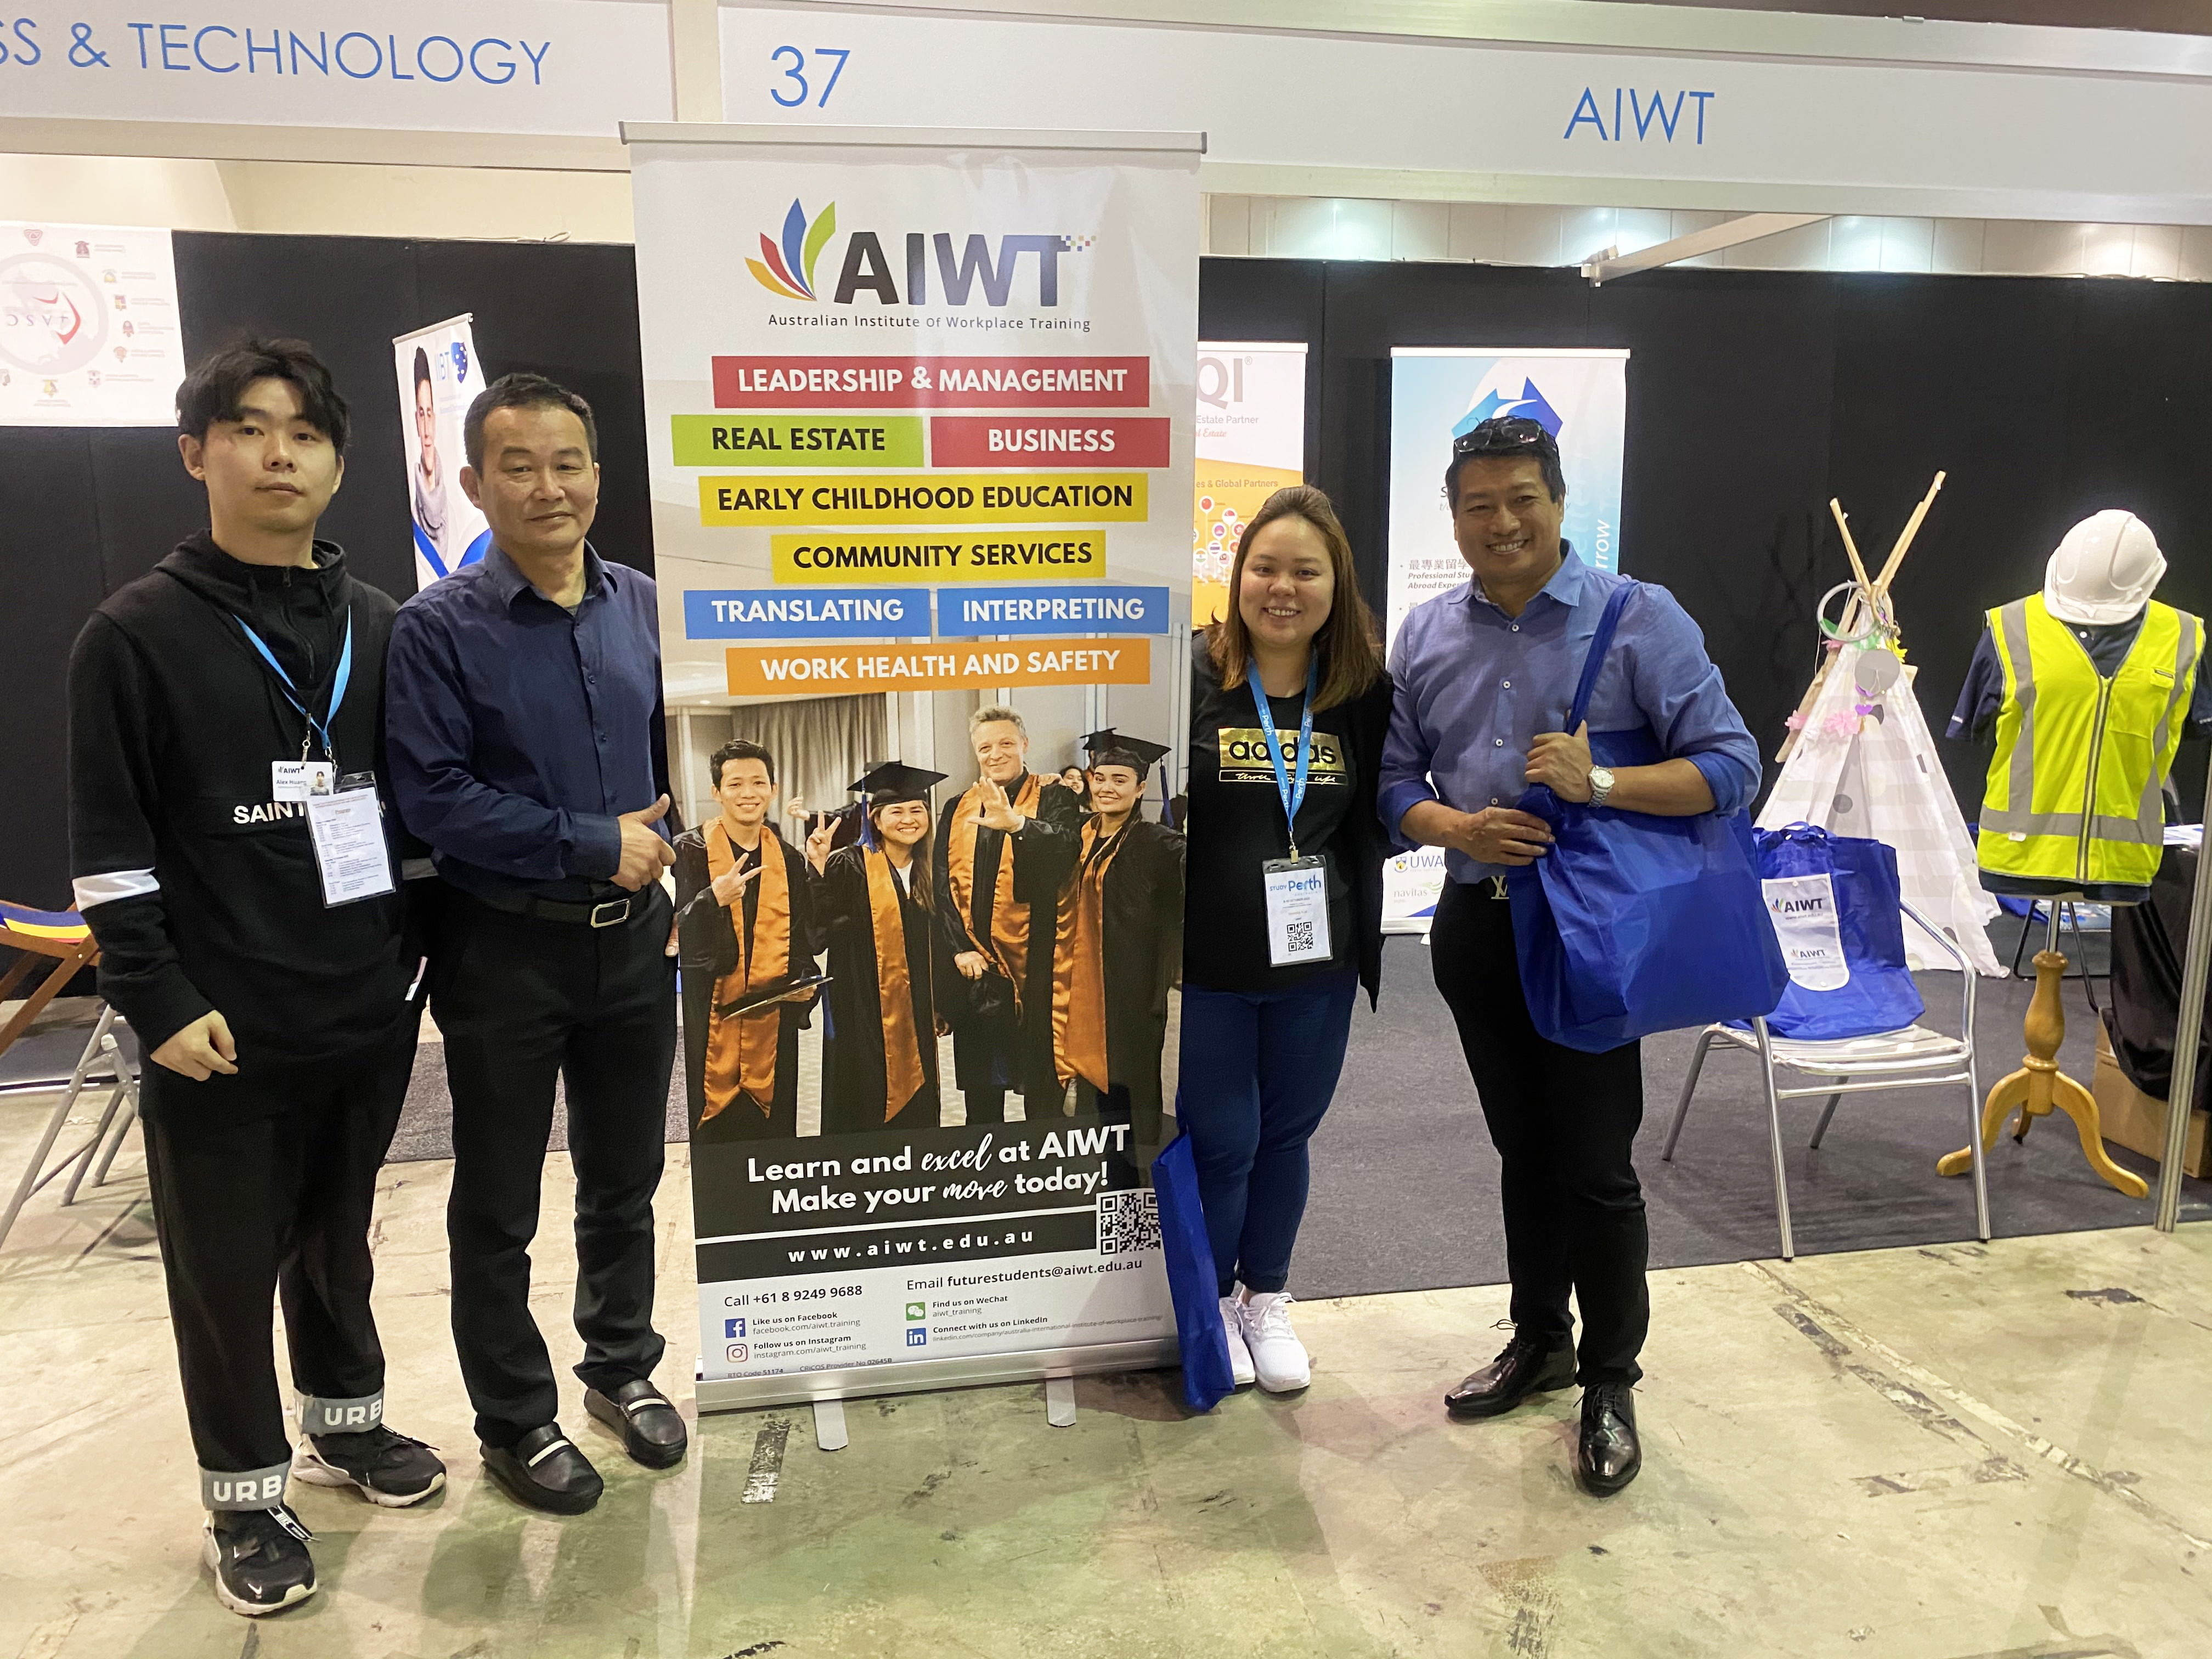 International Education and Careers Expo